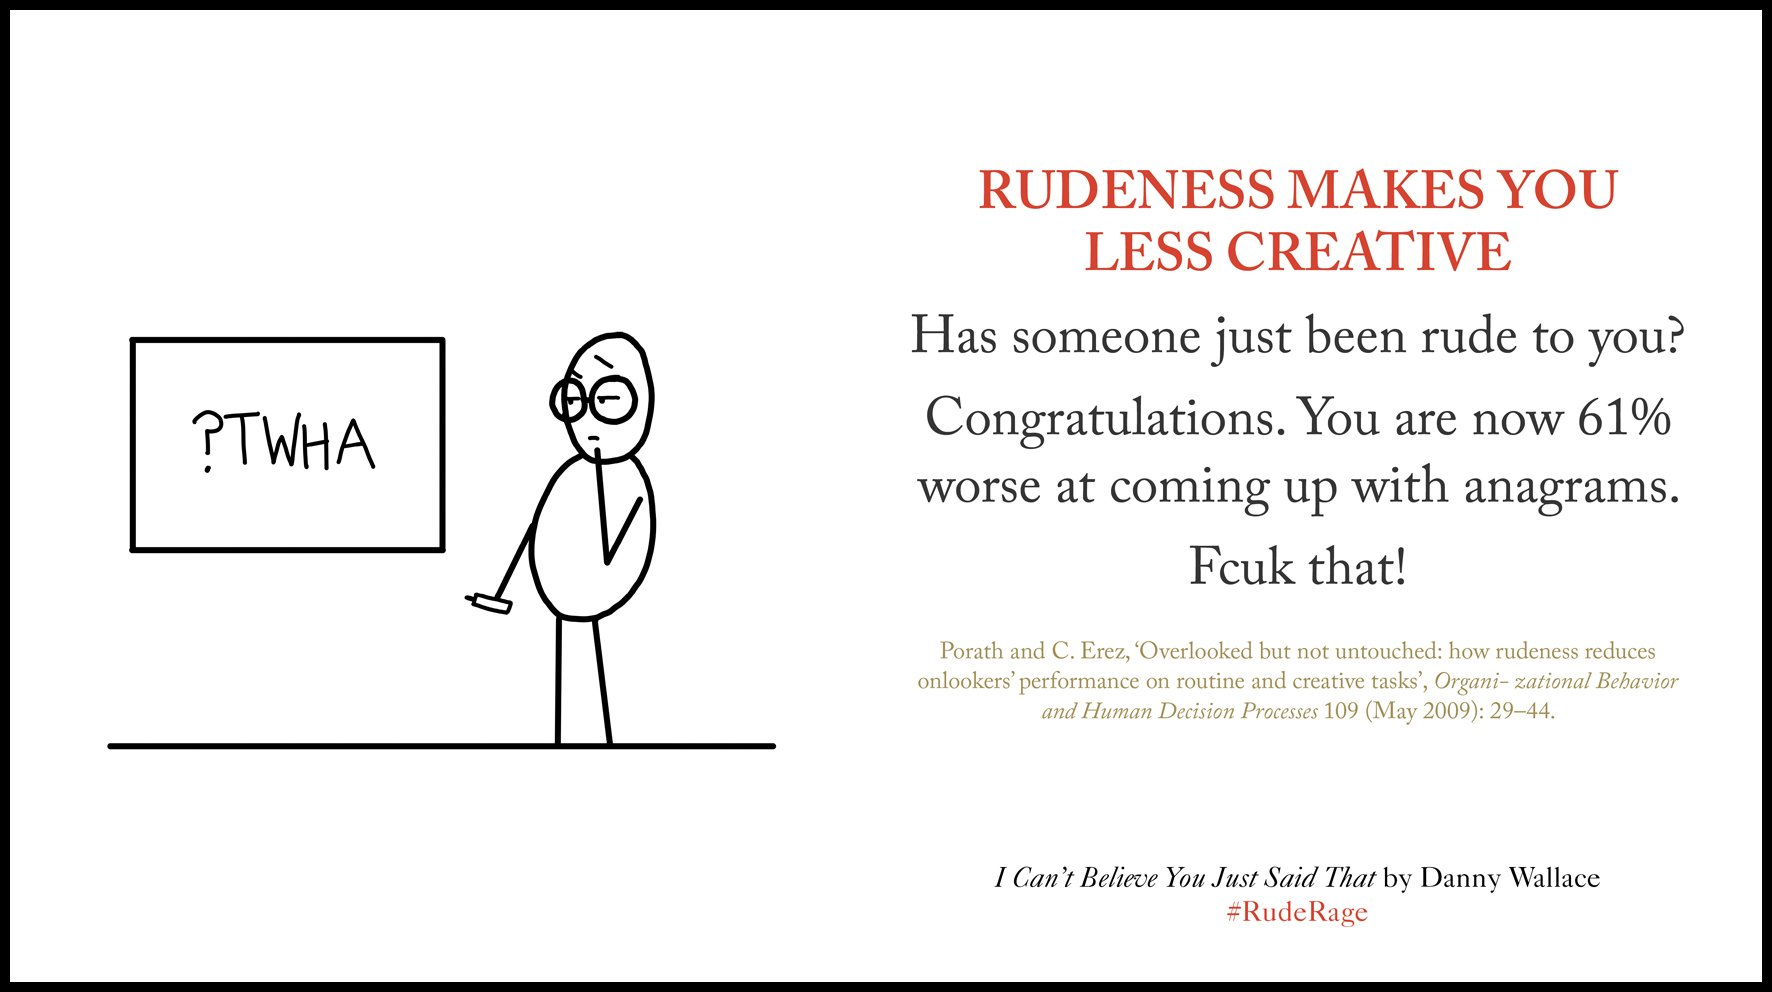 Sunday's (rude) fact about rudeness, from the new book... https://t.co/PsbPxO3zhT #ruderage https://t.co/mcV82qk4Gg